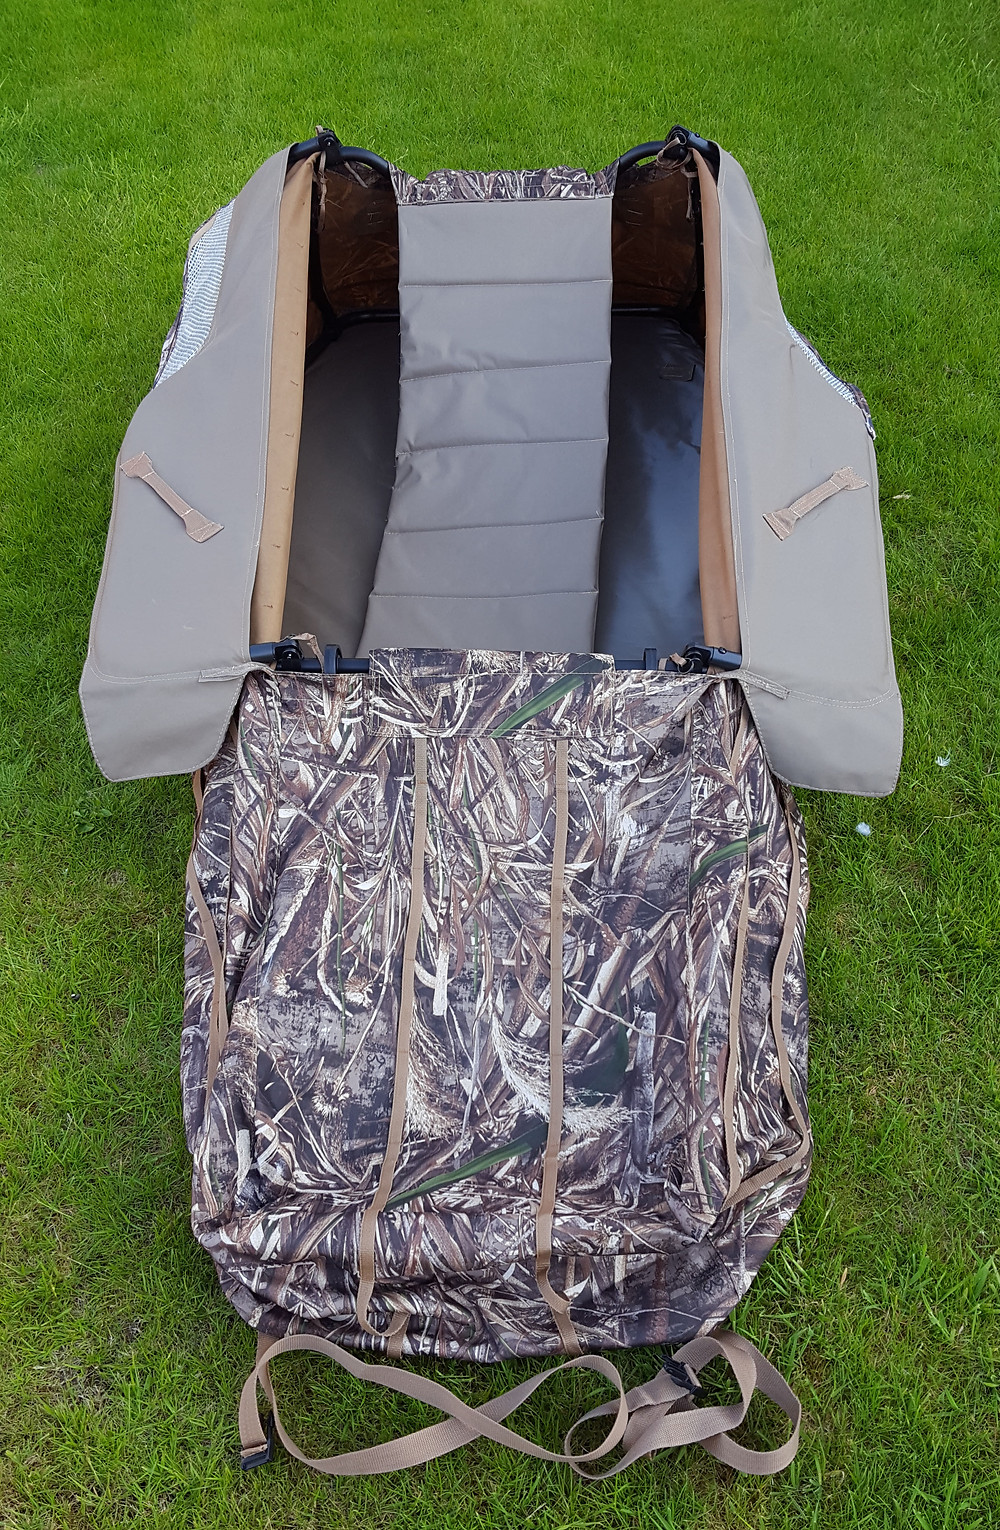 Waterproof layout blind, available from www.durhamdecoys.com